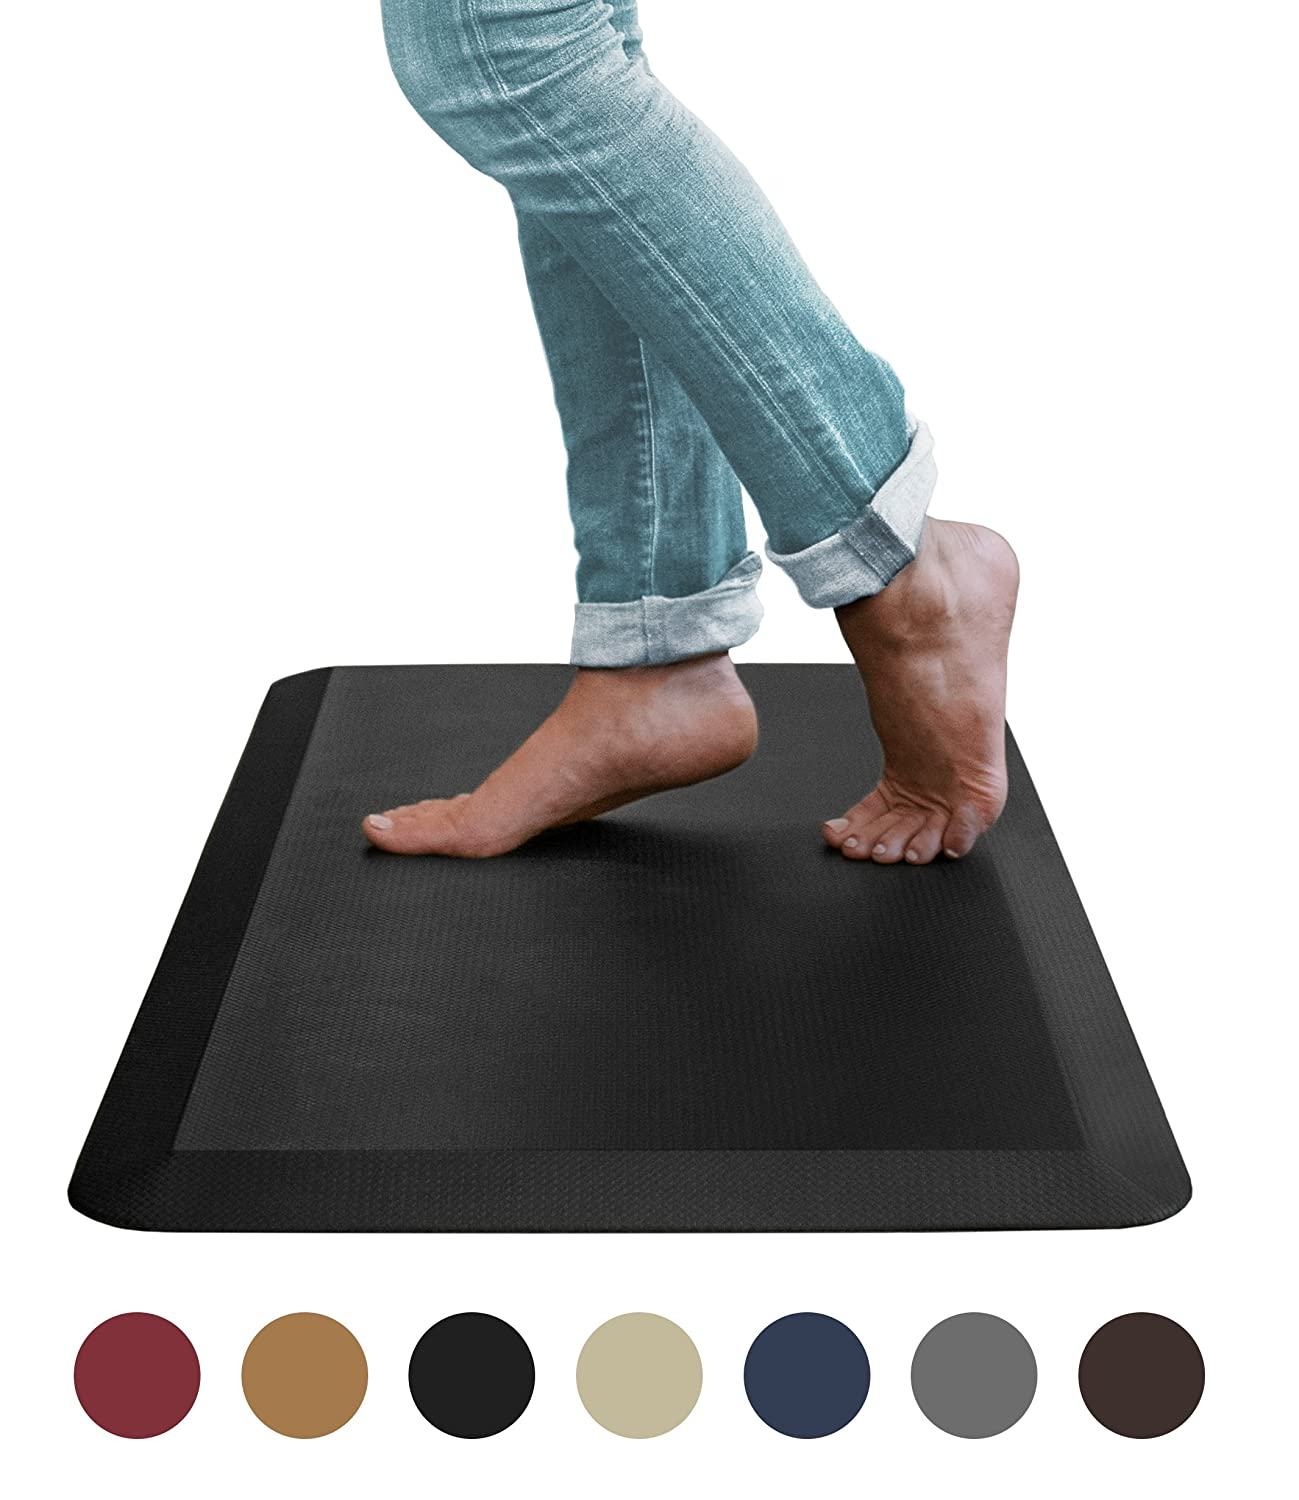 for anti mat top brands mats best large home buying extreme reviews x kitchen office guide fatigue standing homey